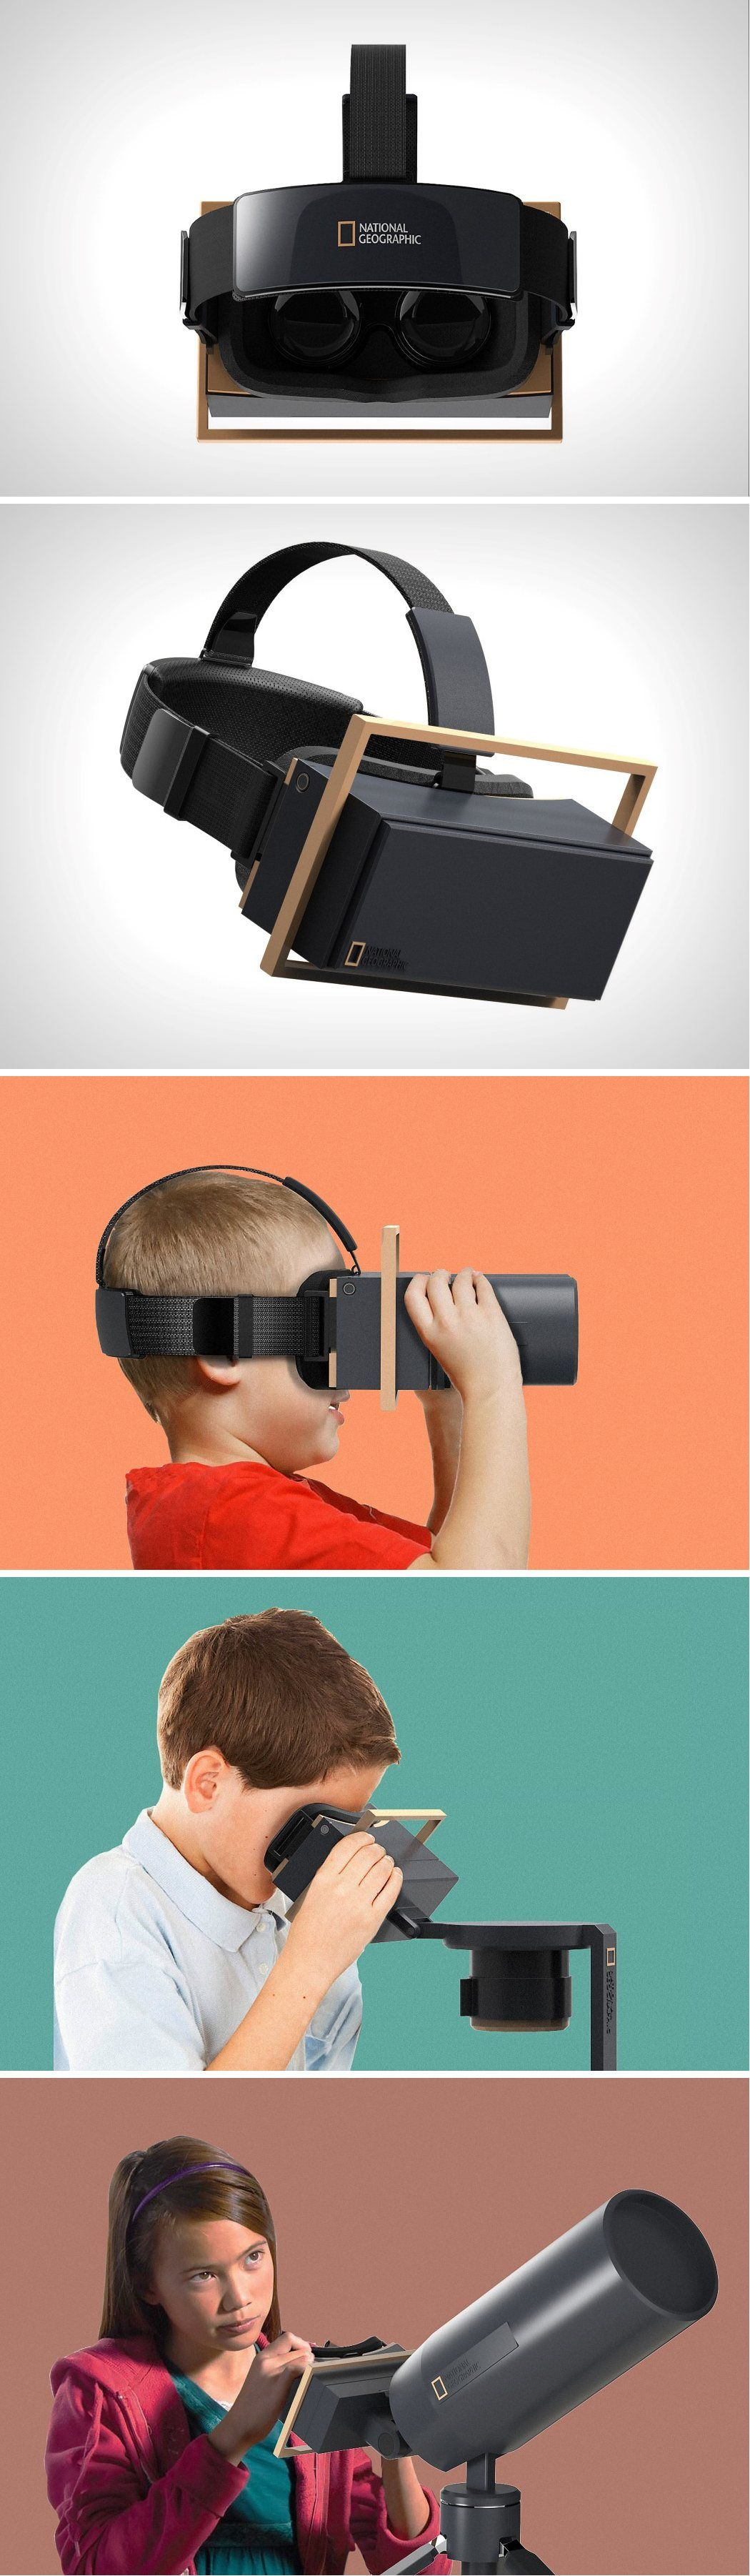 The Vr Touch Kit For National Geographic Comes With Three Attachments That Mimic Binoculars A Tel Virtual Reality Technology Vr Headset Design Wearable Device